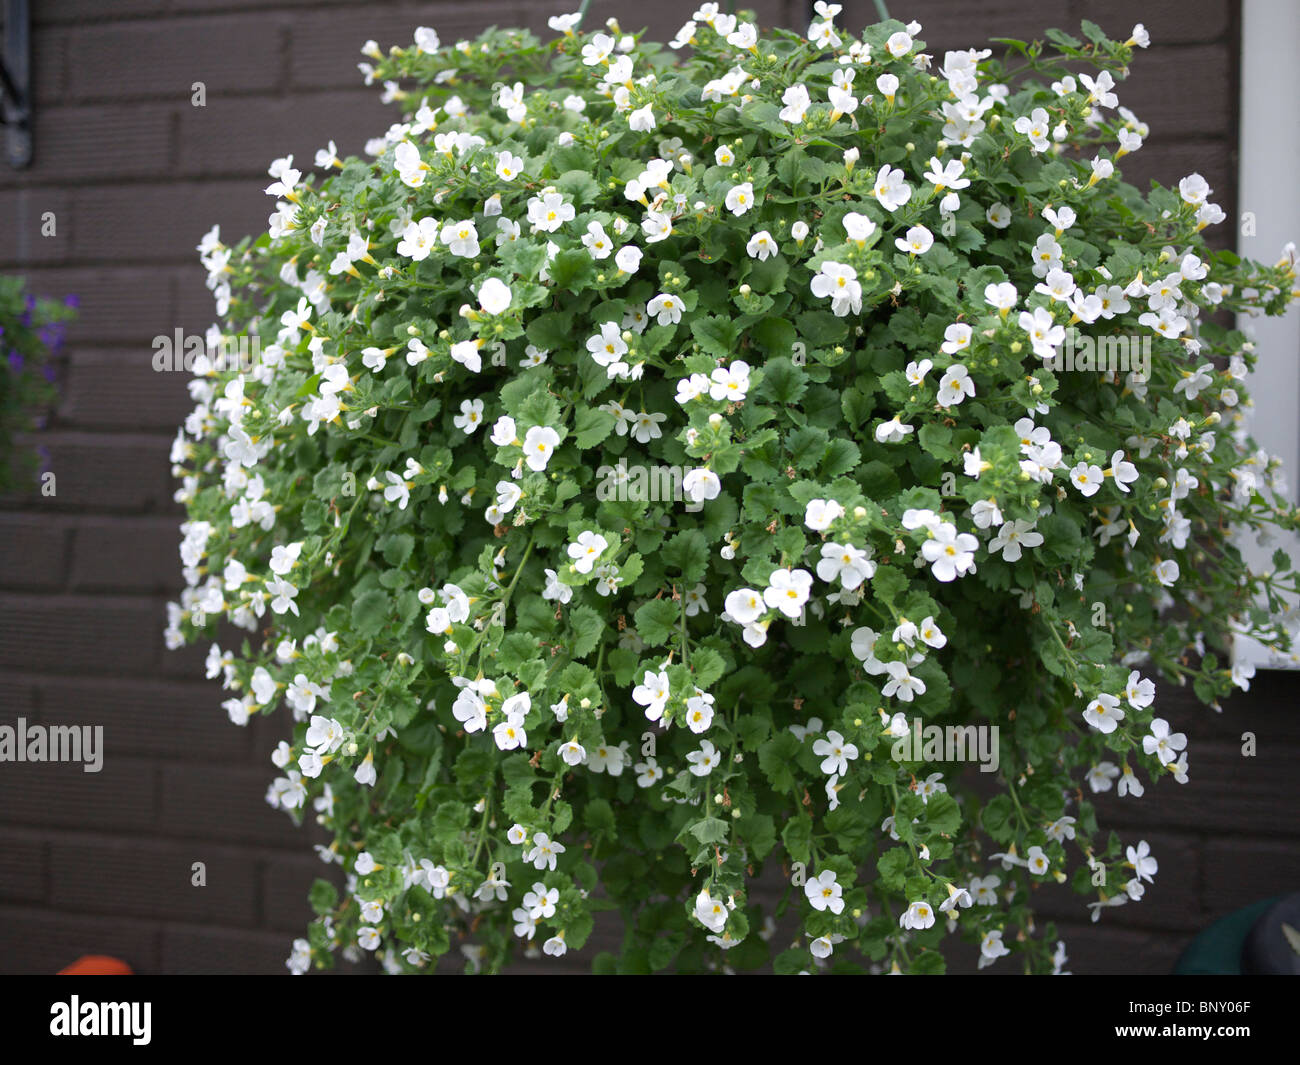 Bacopa Snowtopia Seeds - White Bacopa Flower Seeds